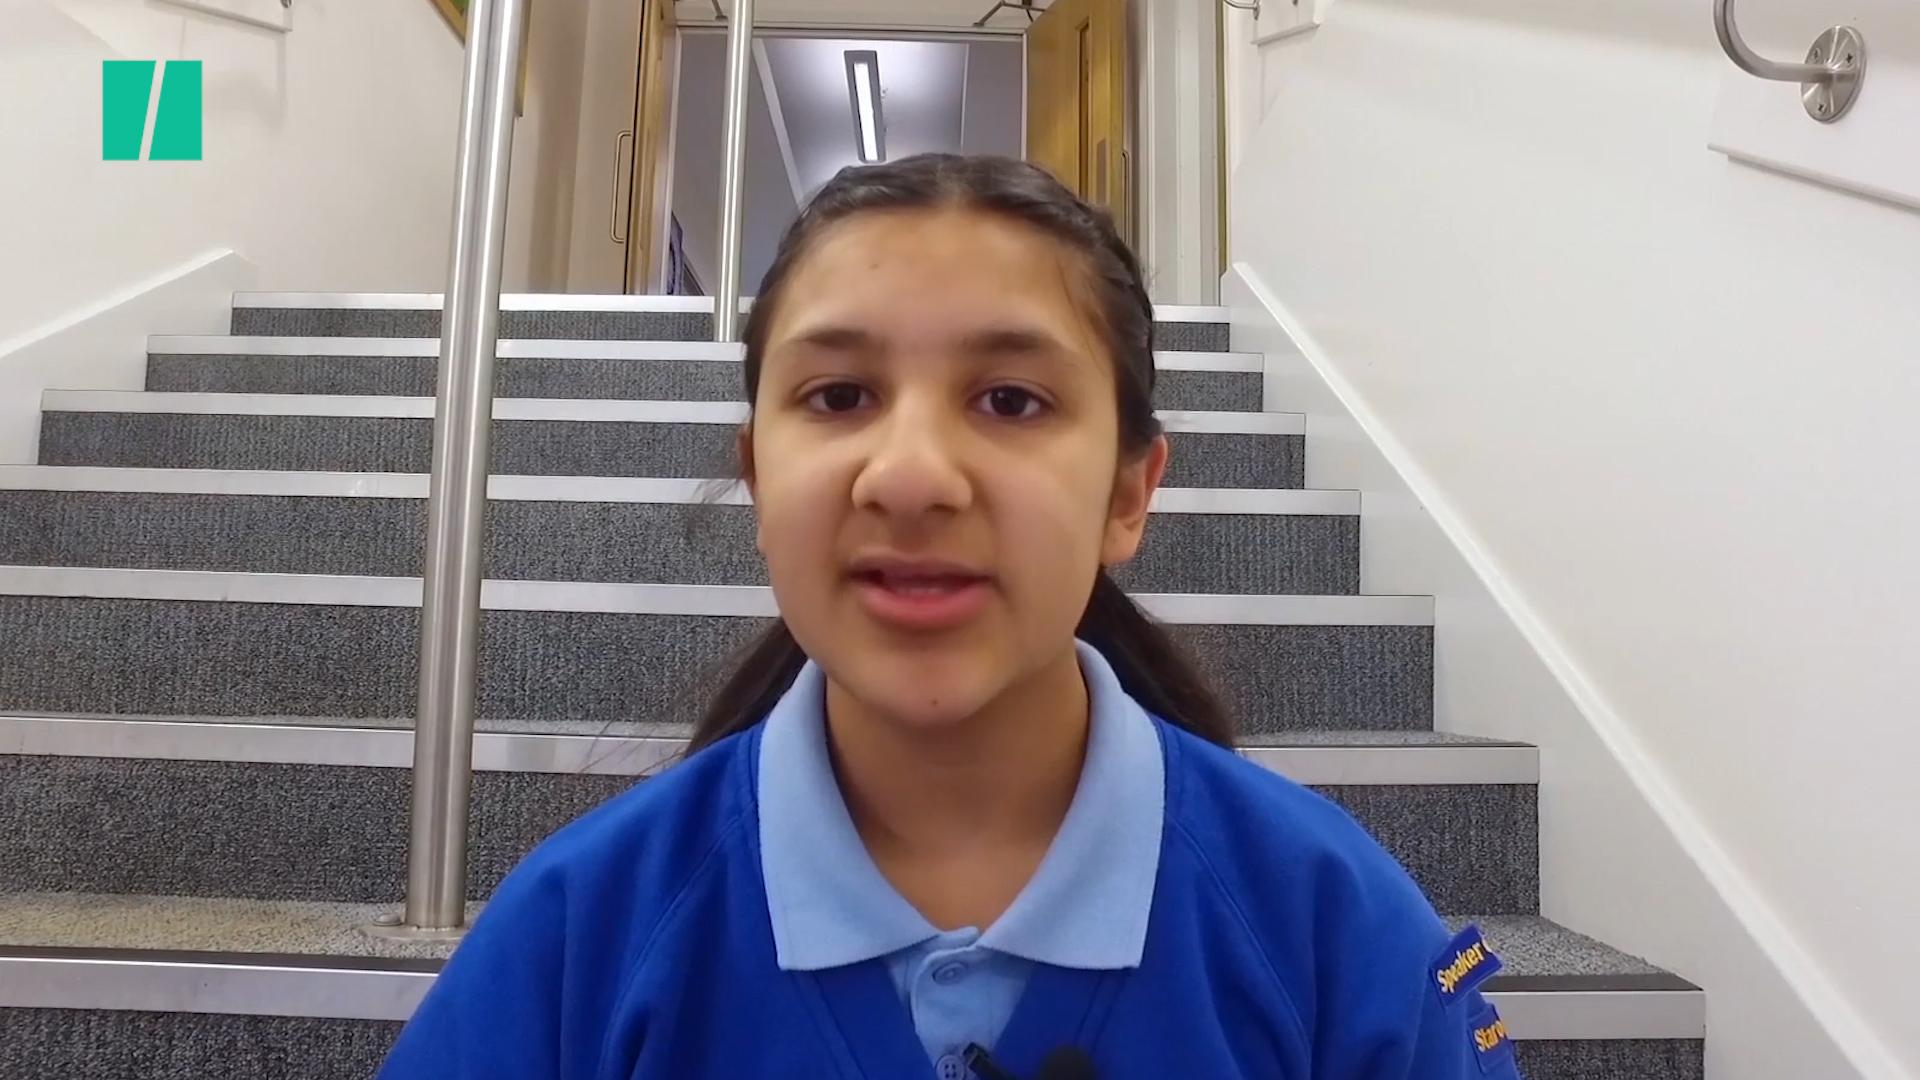 Muslim Girl Wins Competition With Speech About Manchester Arena Bombing